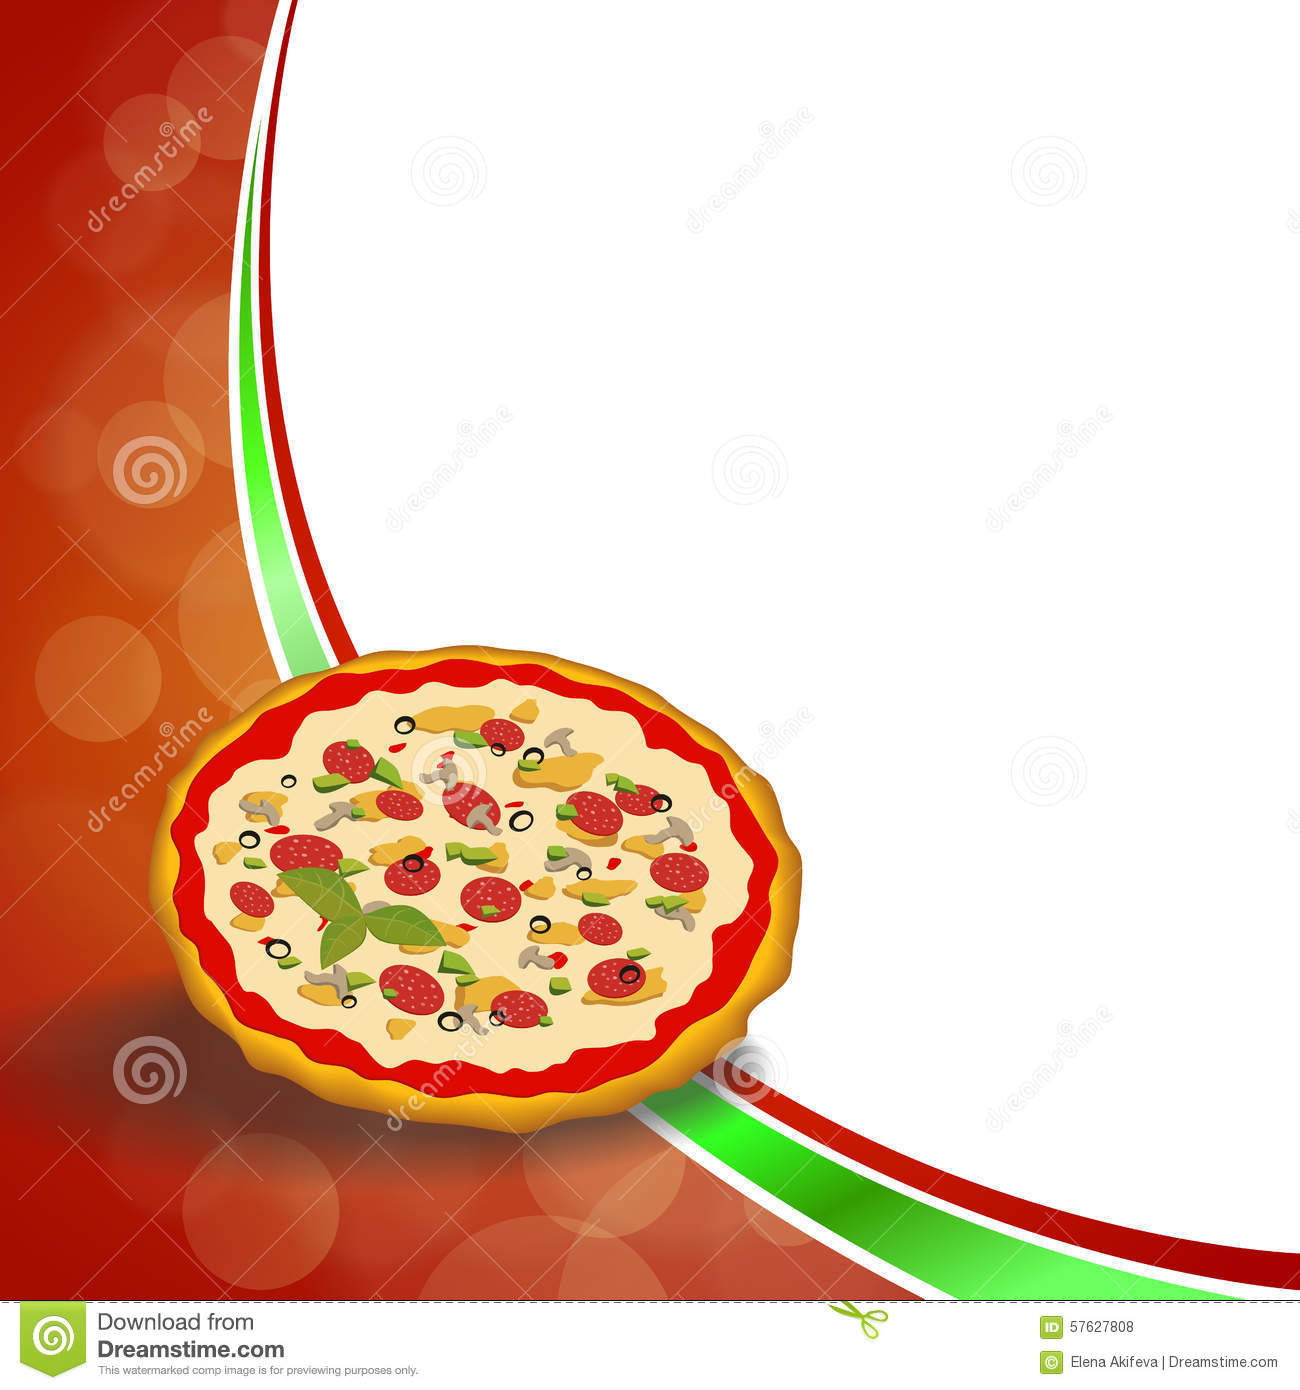 https://thumbs.dreamstime.com/z/abstract-background-red-green-food-pizza-yellow-orange-frame-illustration-vector-57627808.jpg